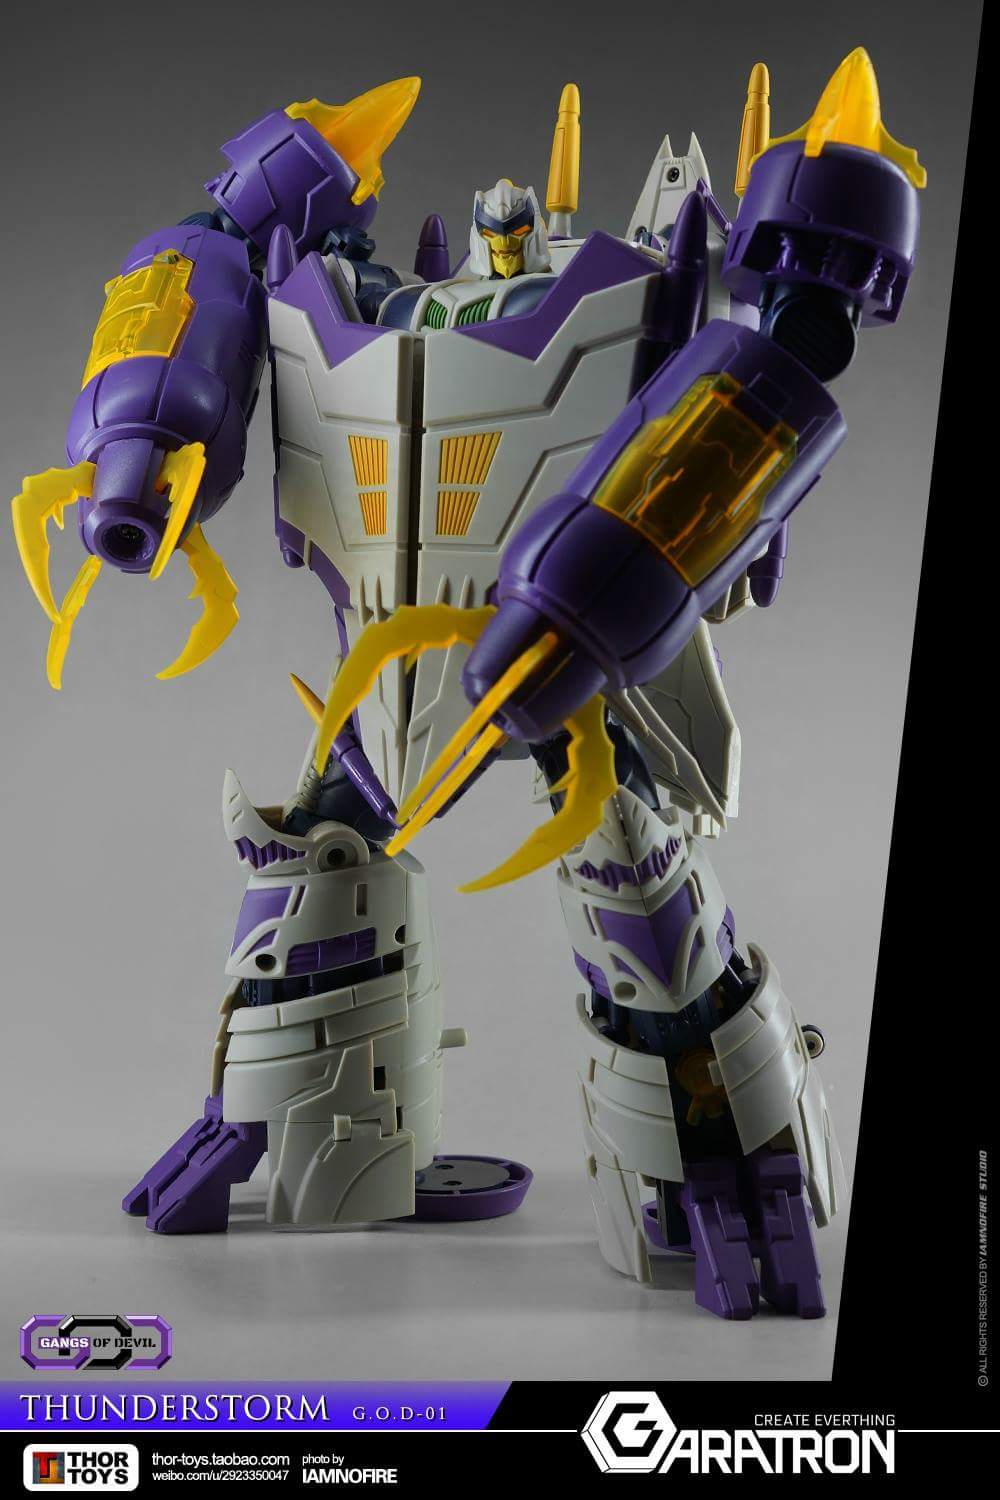 [Garatron] Produit Tiers - Gand of Devils G.O.D-01 Thunderstorm - aka Thunderwing des BD TF d'IDW - Page 2 PWBeBk3D